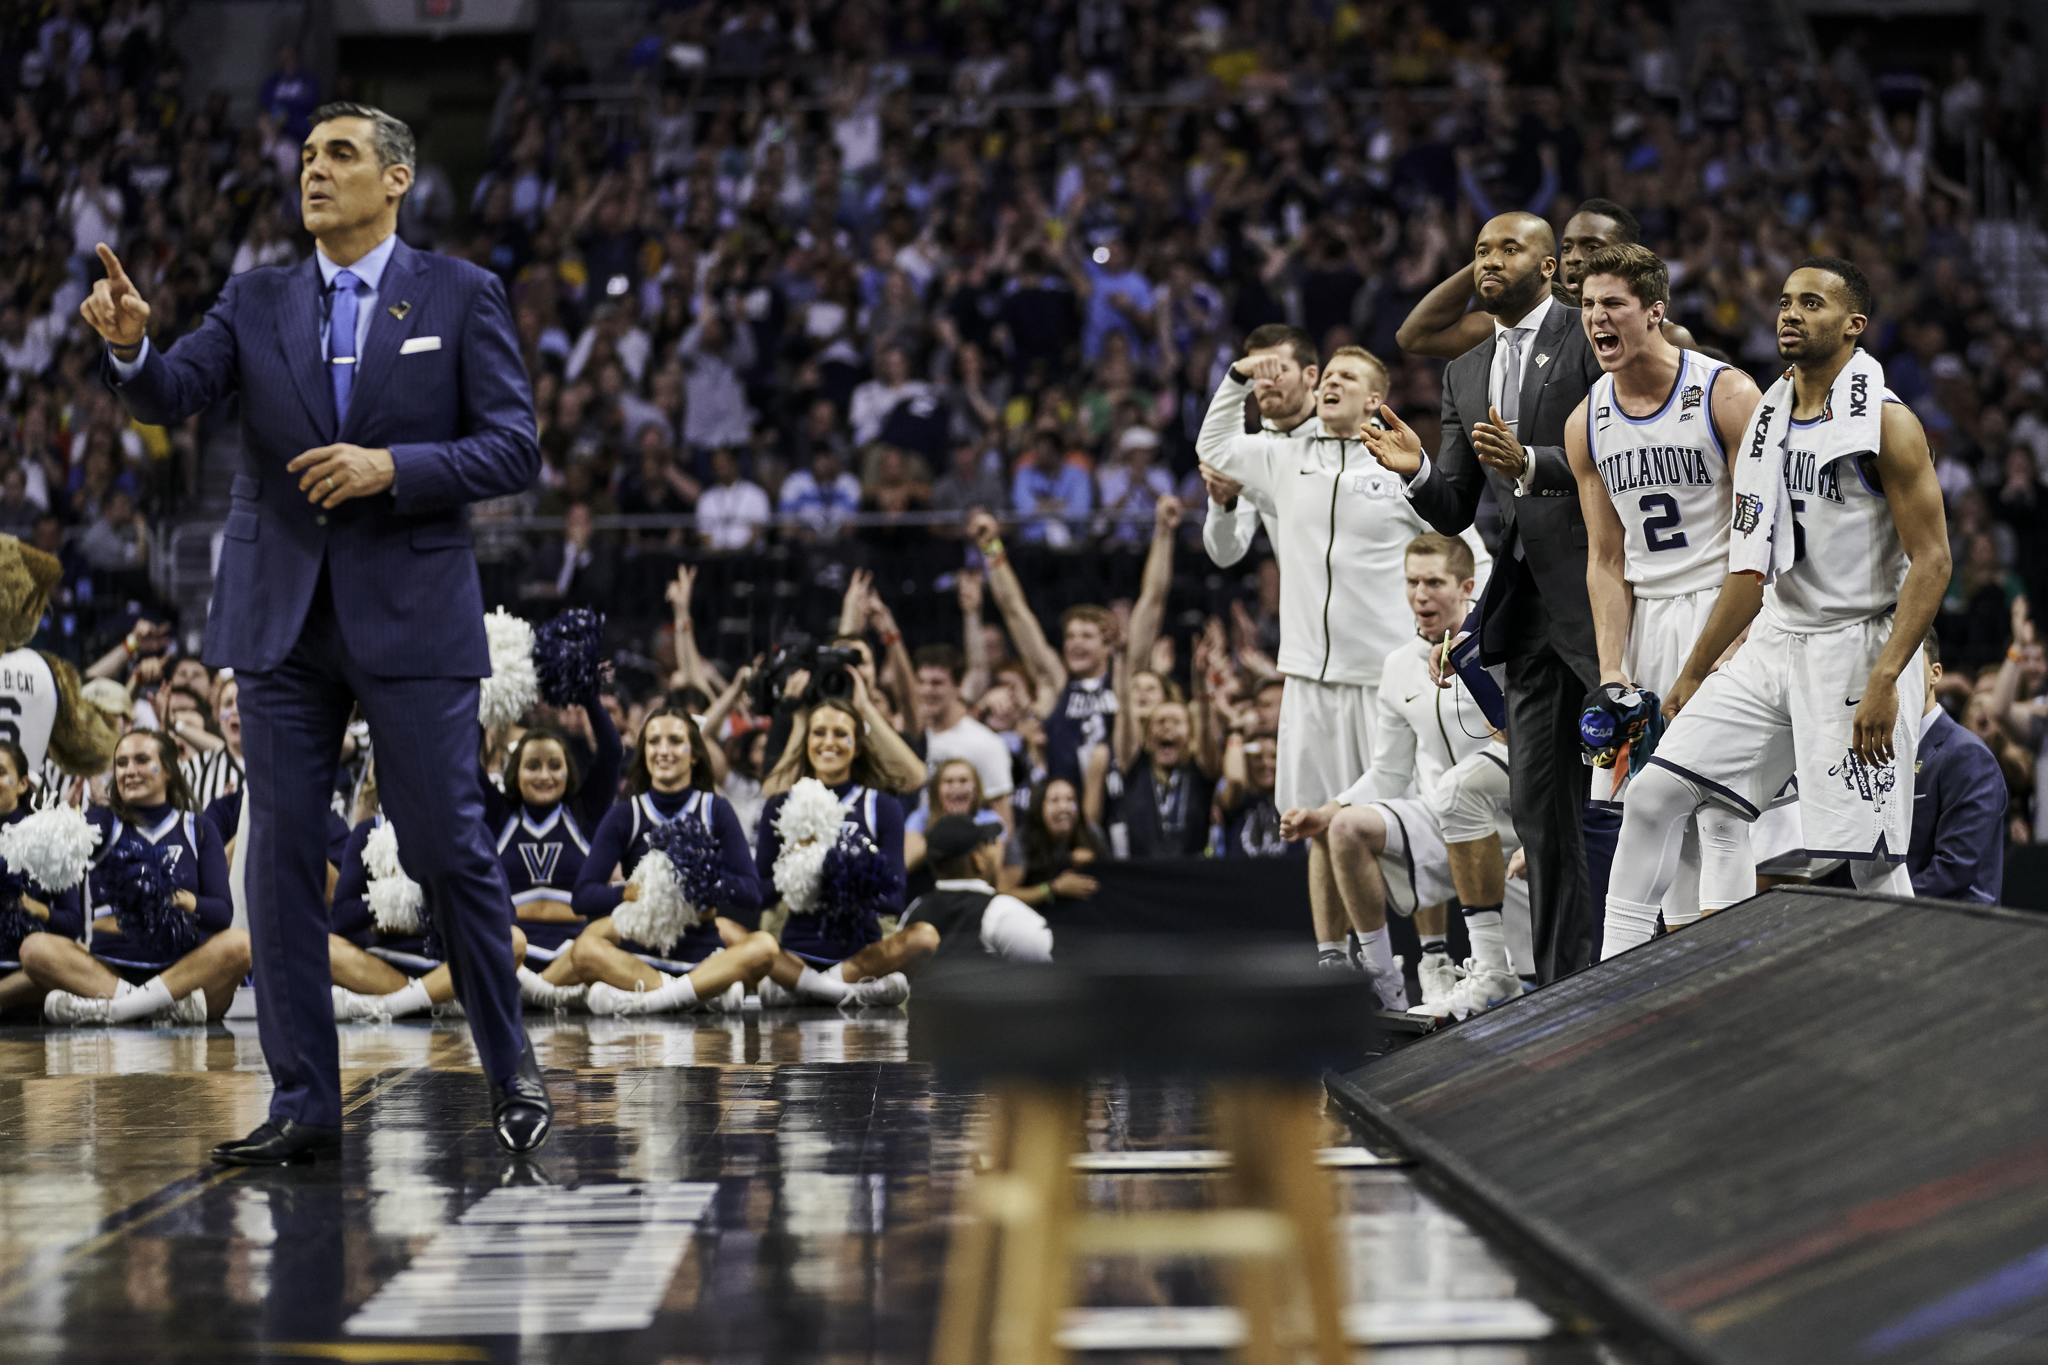 The Villanova bench celebrates in the second half.   Sony A9, Sony 70-200mm f2.8 GM